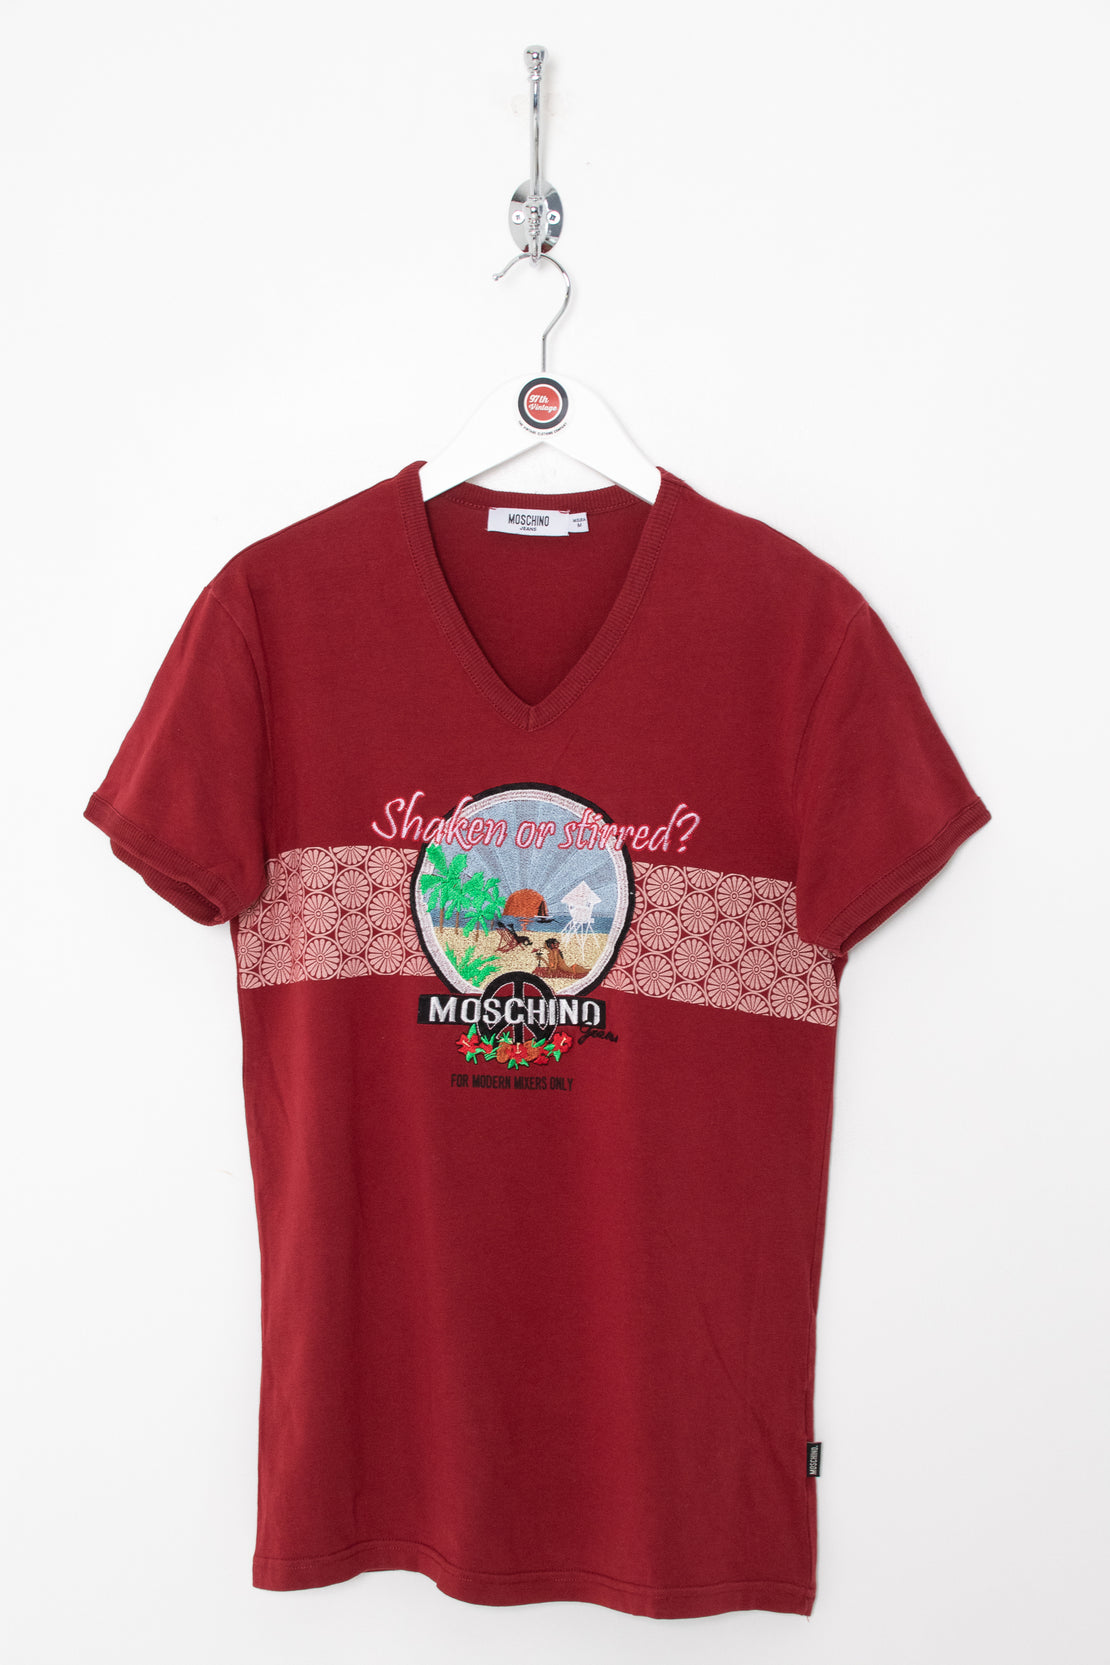 Women's Moschino T-Shirt (M)